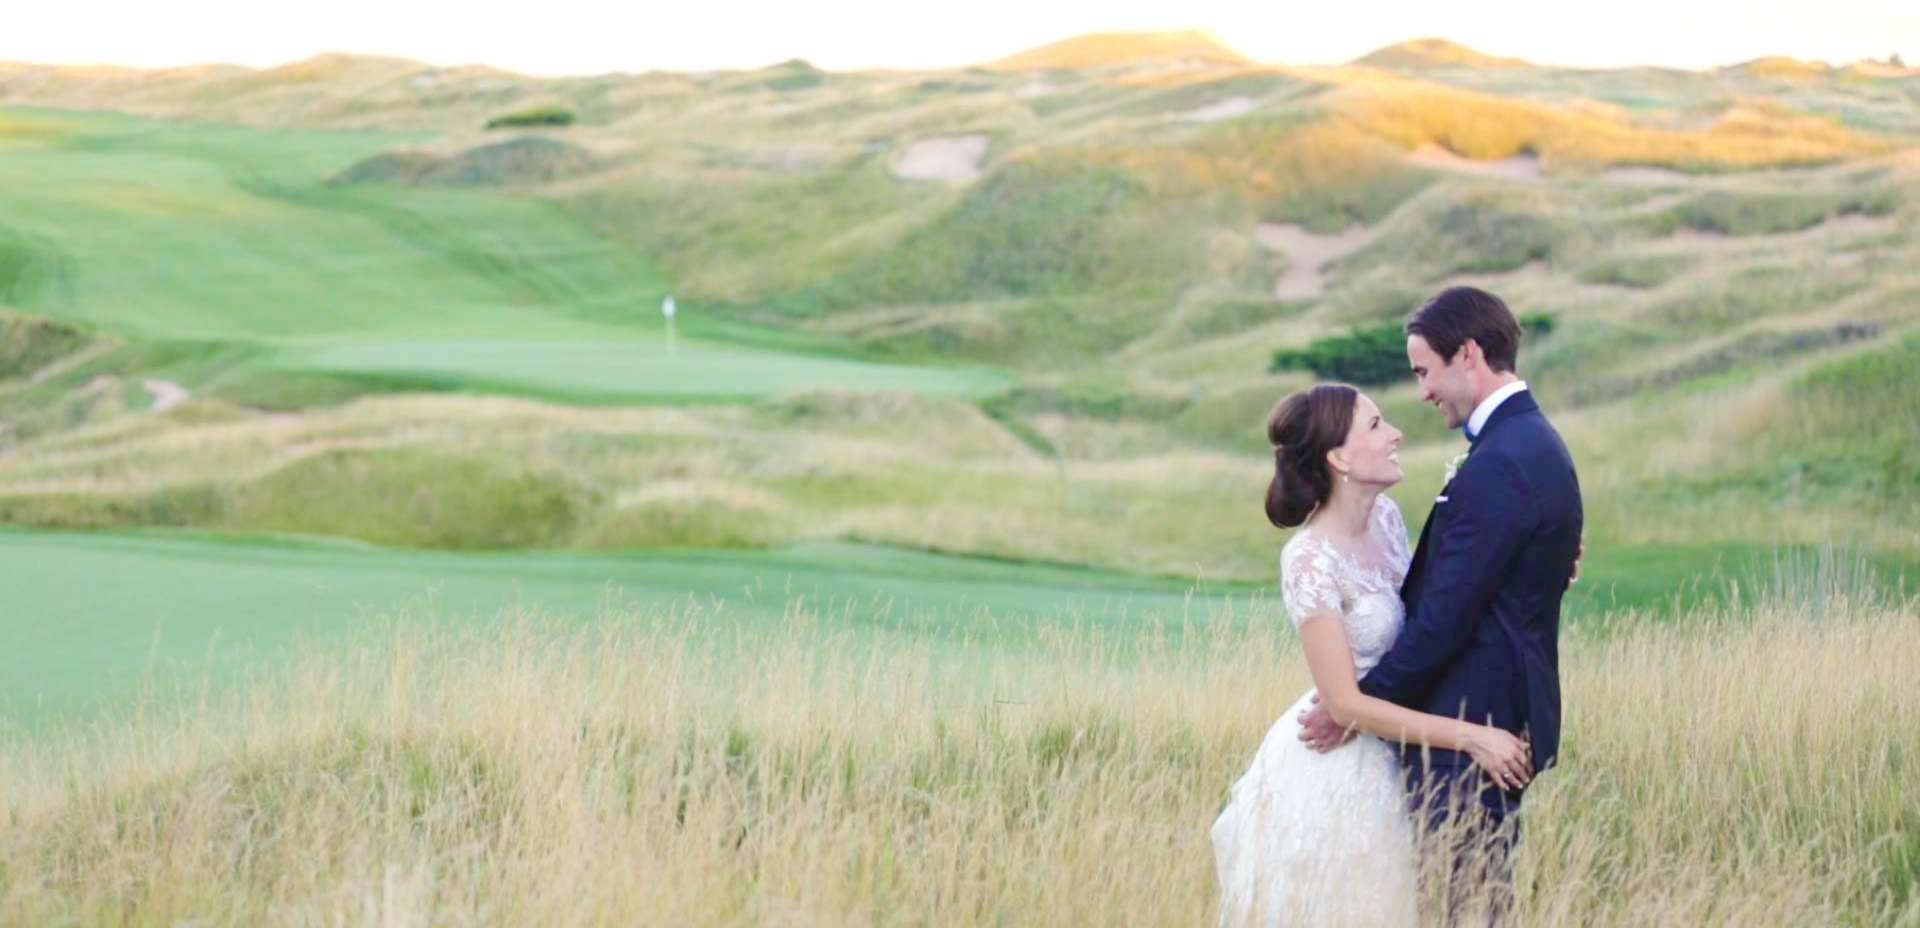 Wisconsin wedding videography by Vaughter Films